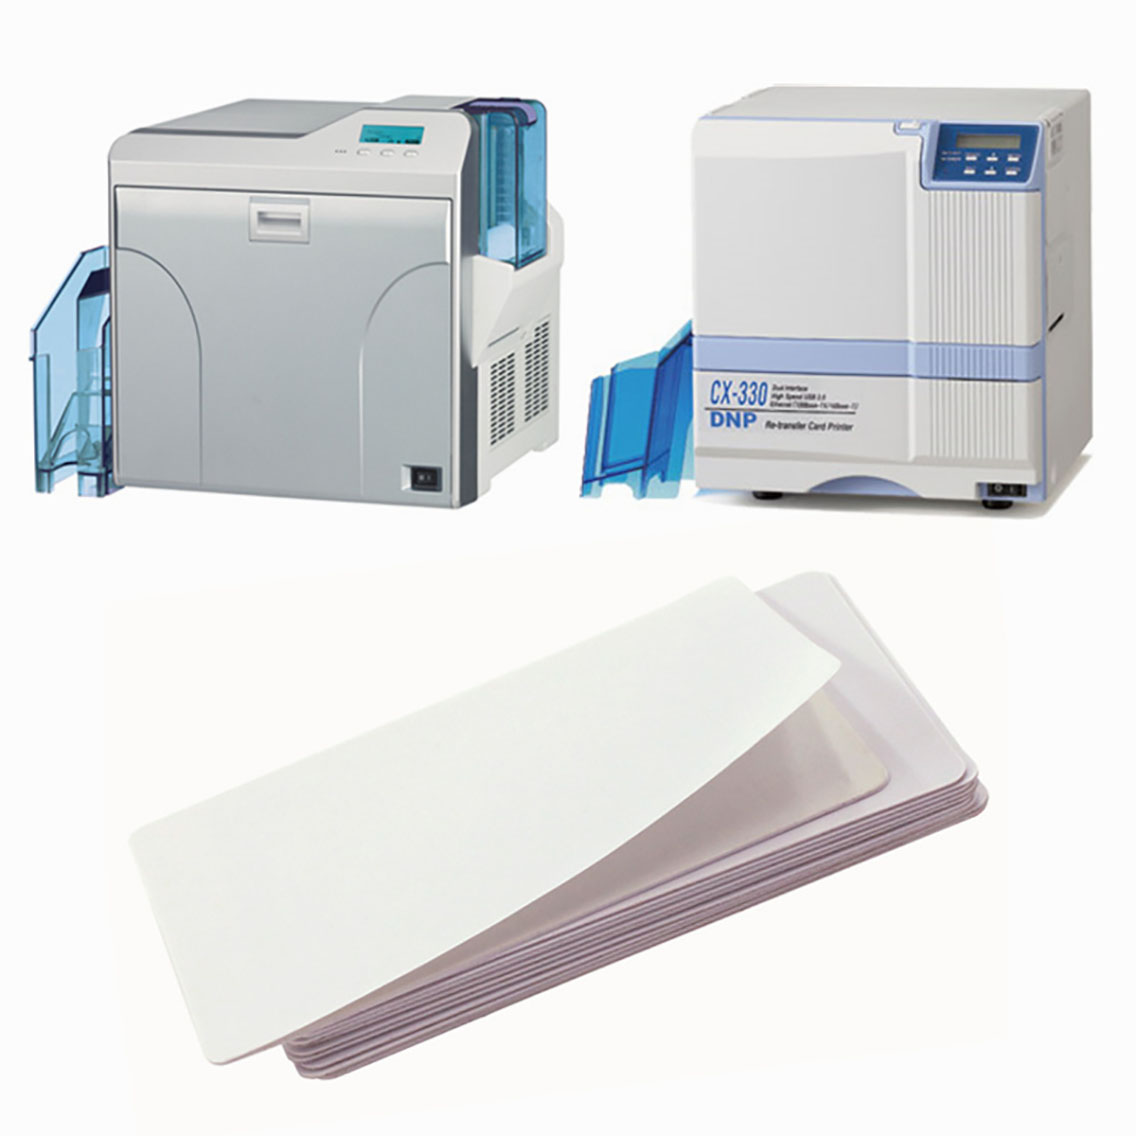 Cleanmo 3M Glue Dai Nippon Printer Cleaning Cards factory for DNP CX-210, CX-320 & CX-330 Printers-2